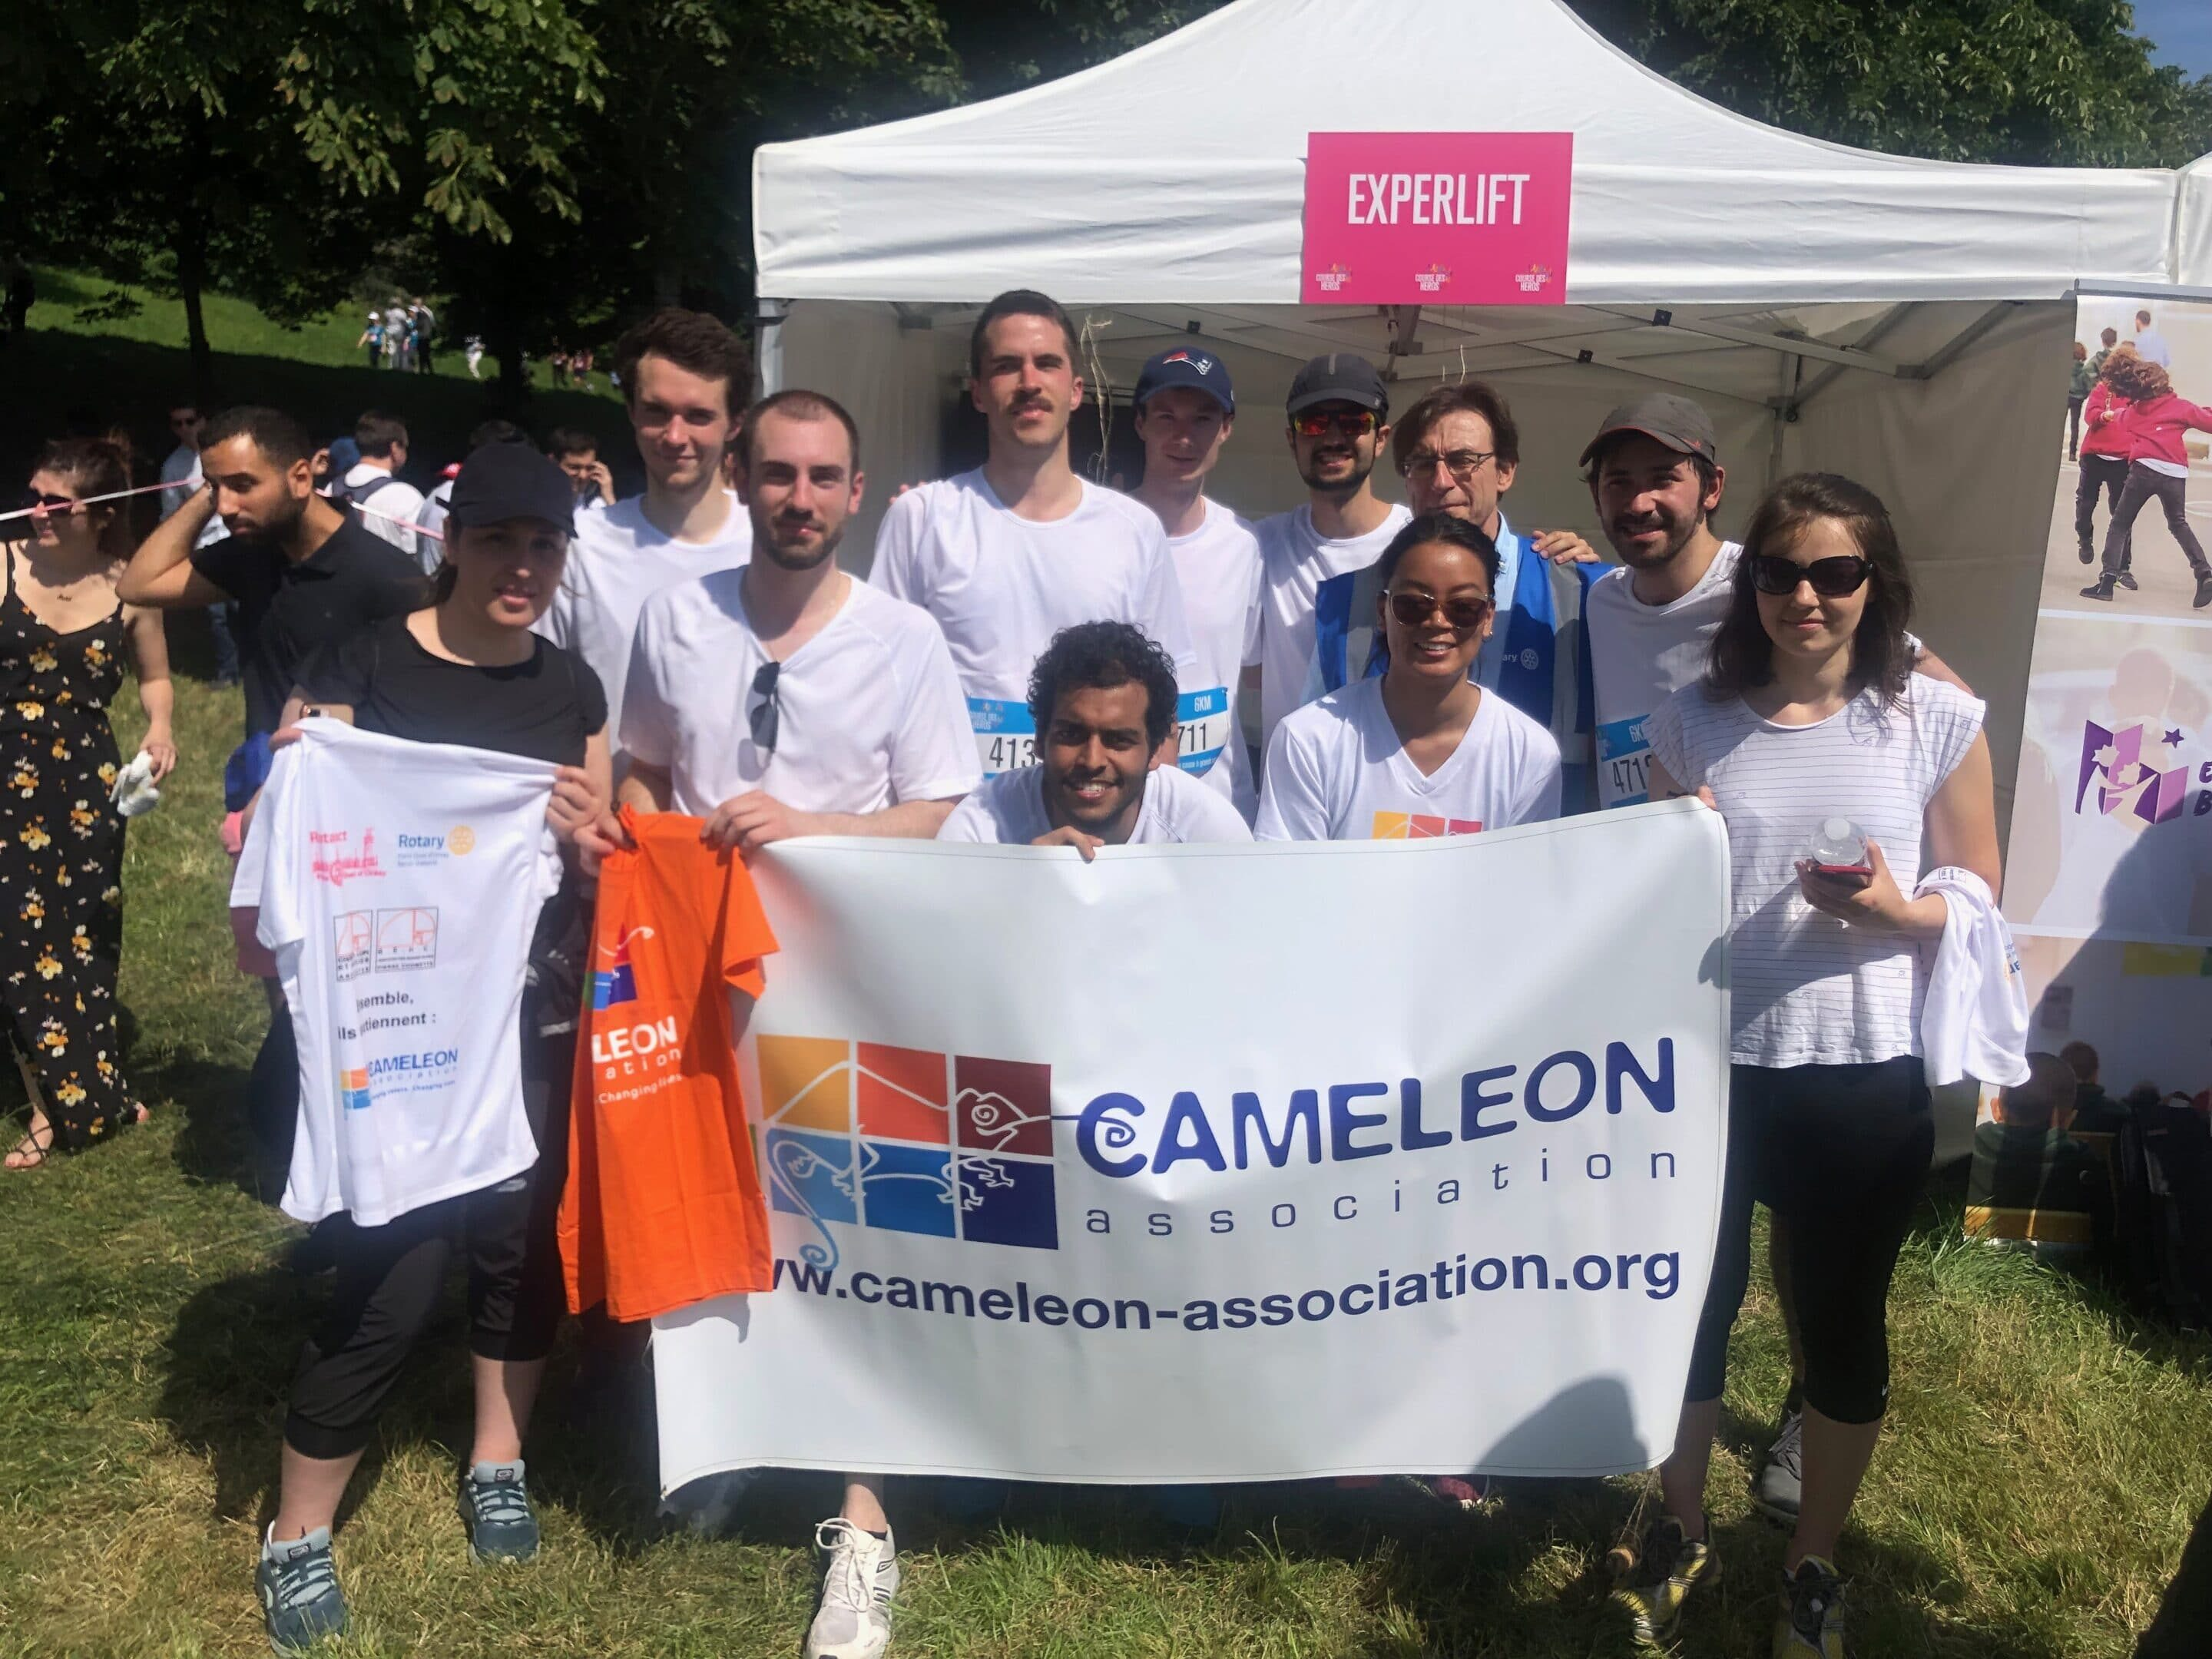 CAMELEON at the Courses des Héros Paris and Lyon (Paris and Lyon Heroes' Run)